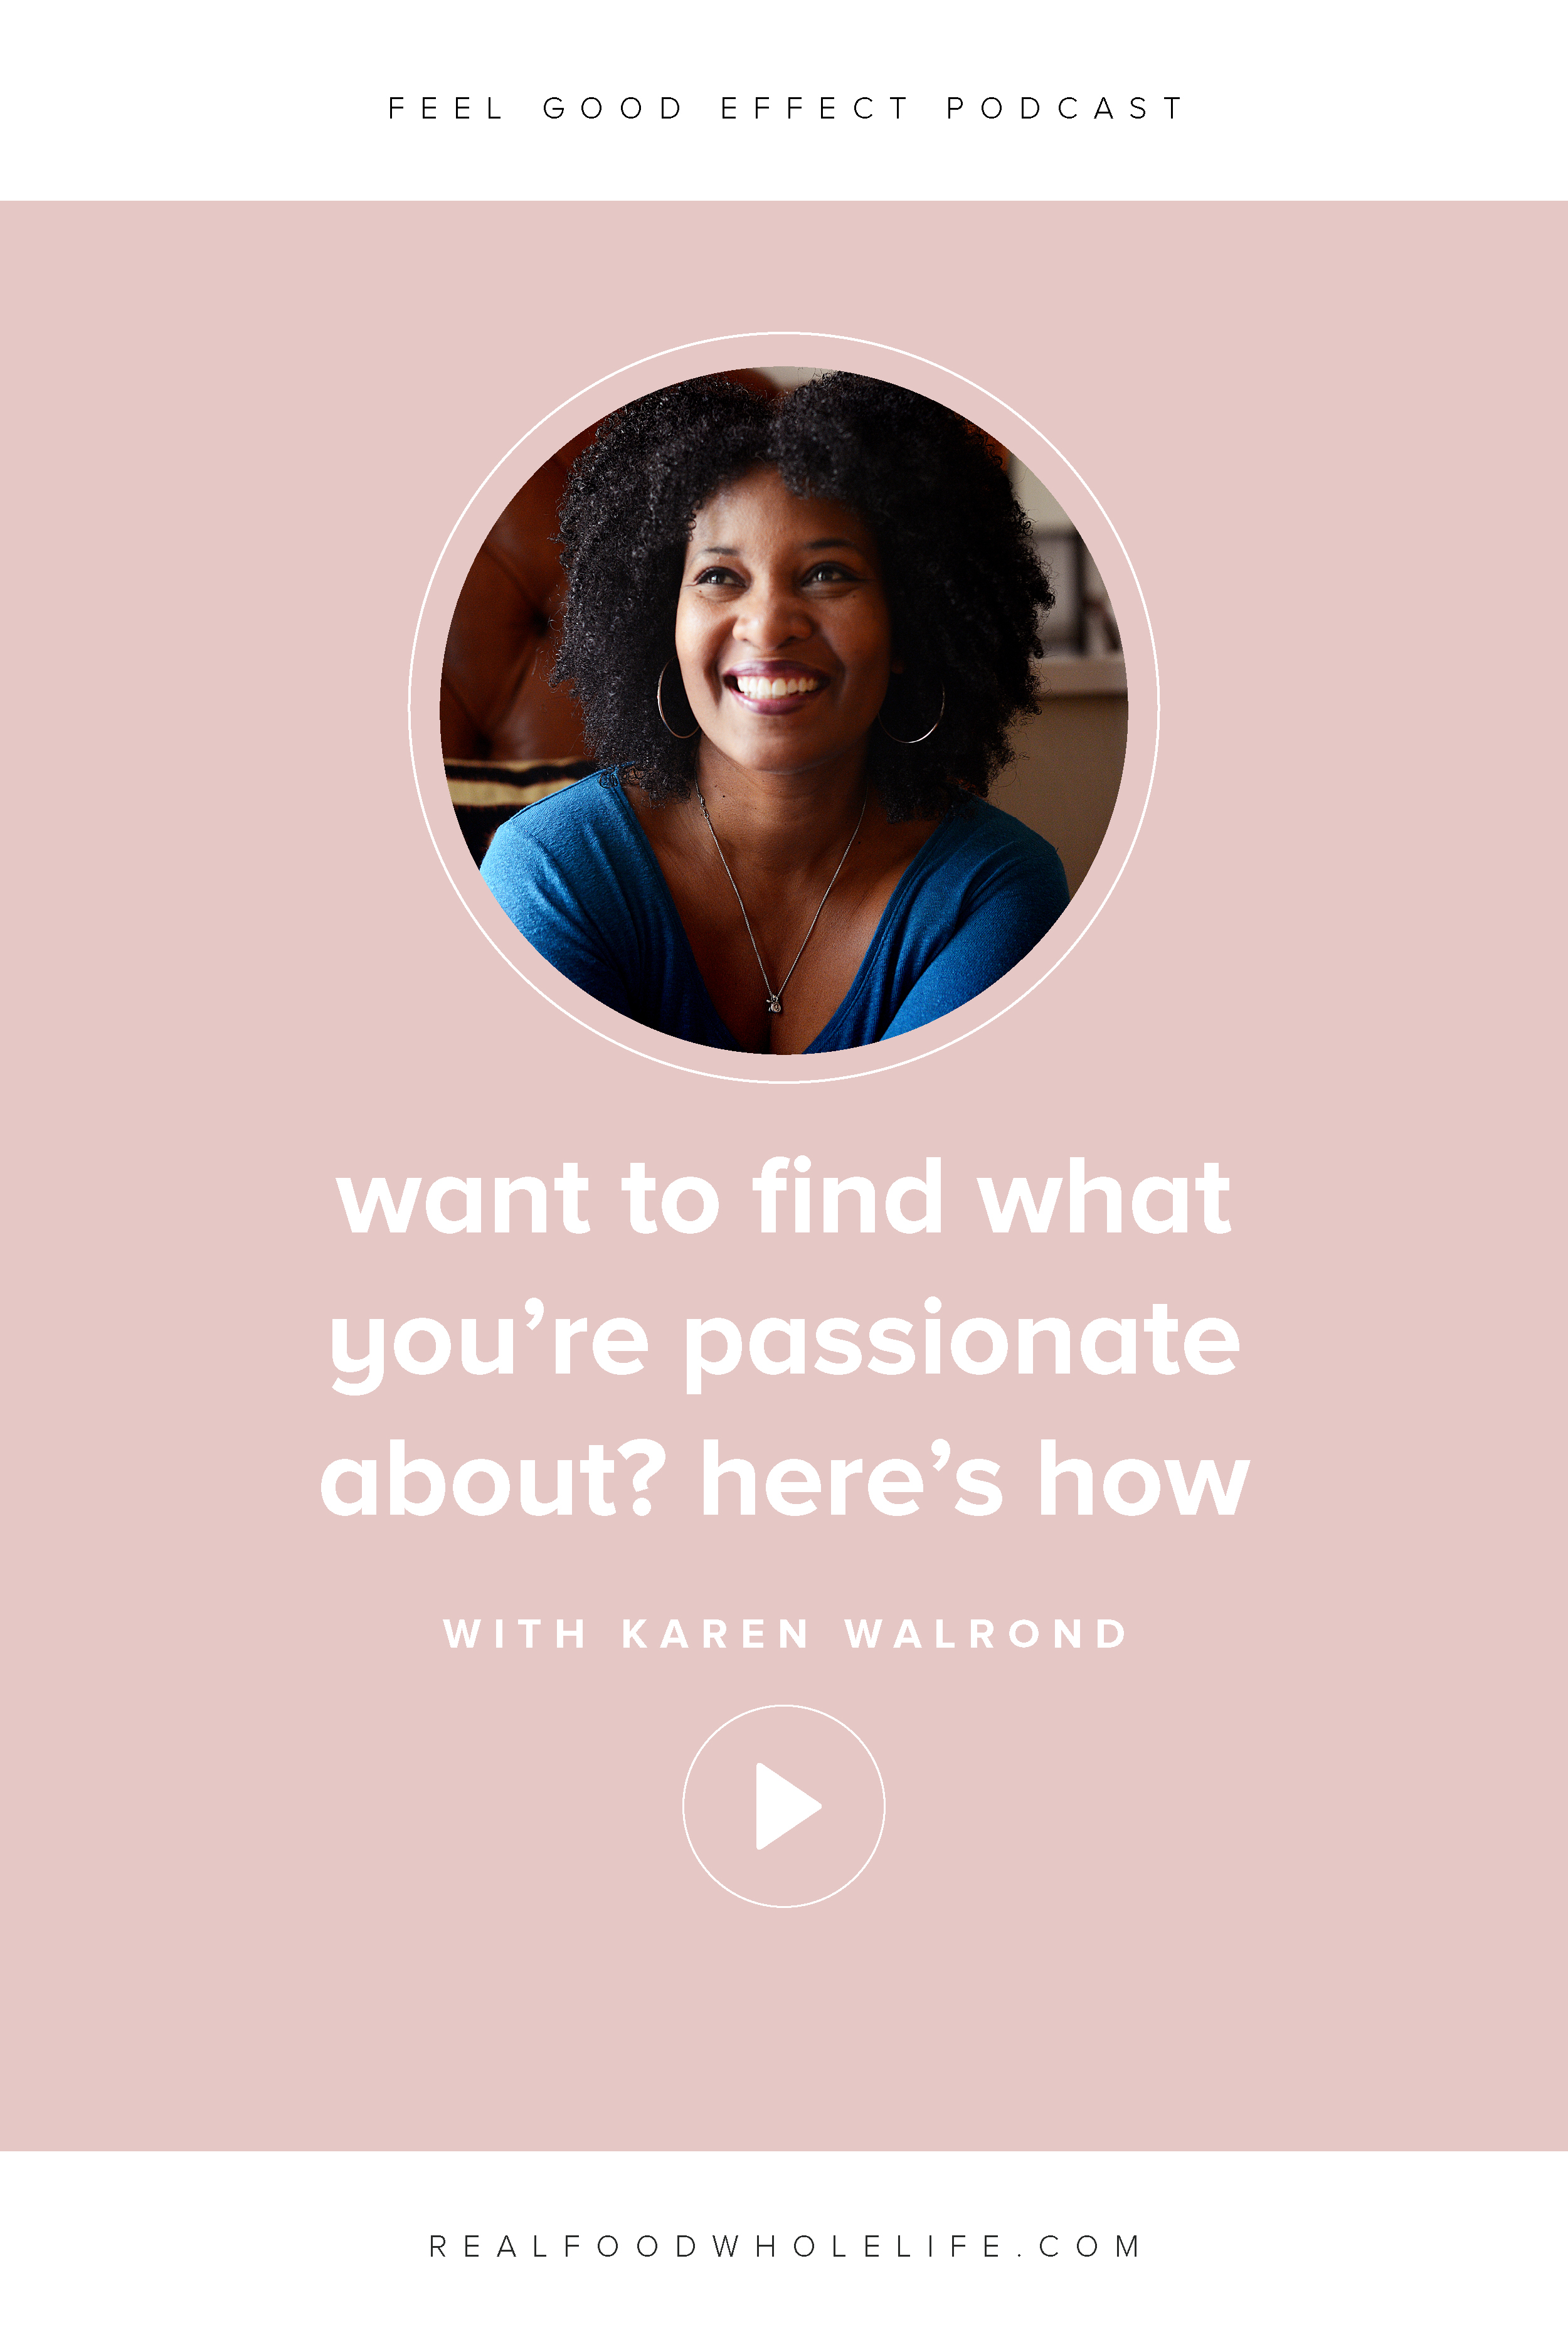 Want to discover what you're really passionate about? Here's how, with Karen Walond on the Feel Good Effect Podcast. #realfoodwholelife #feelgoodeffect #podcast #wellness #purpose